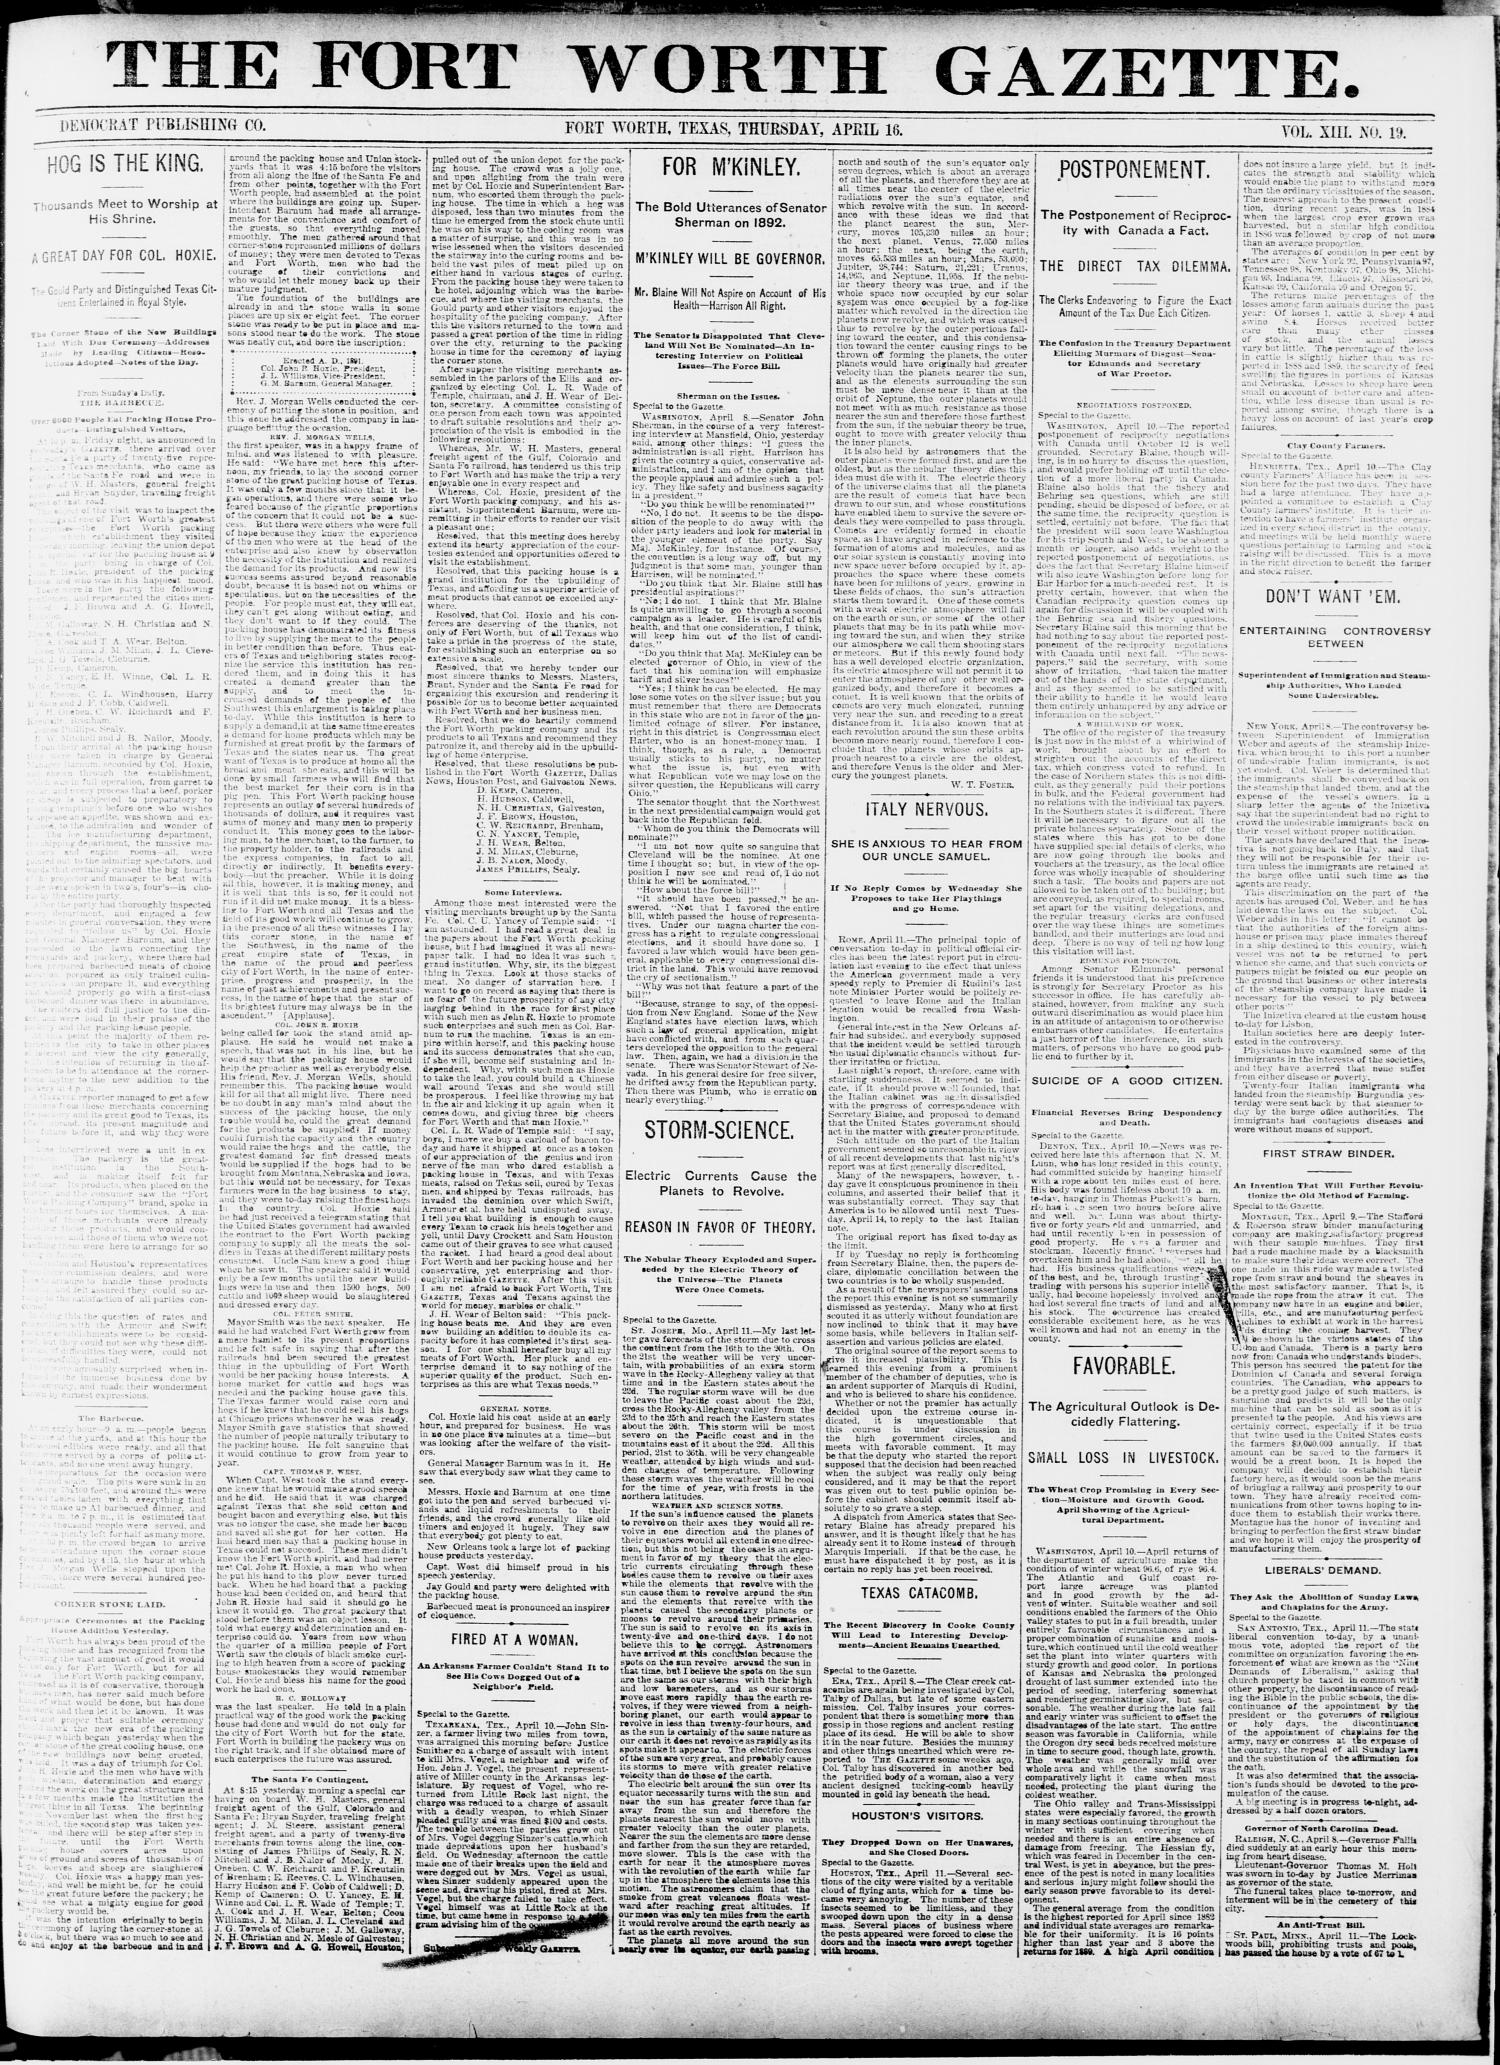 Fort Worth Gazette. (Fort Worth, Tex.), Vol. 13, No. 19, Ed. 1, Thursday, April 16, 1891                                                                                                      [Sequence #]: 1 of 20